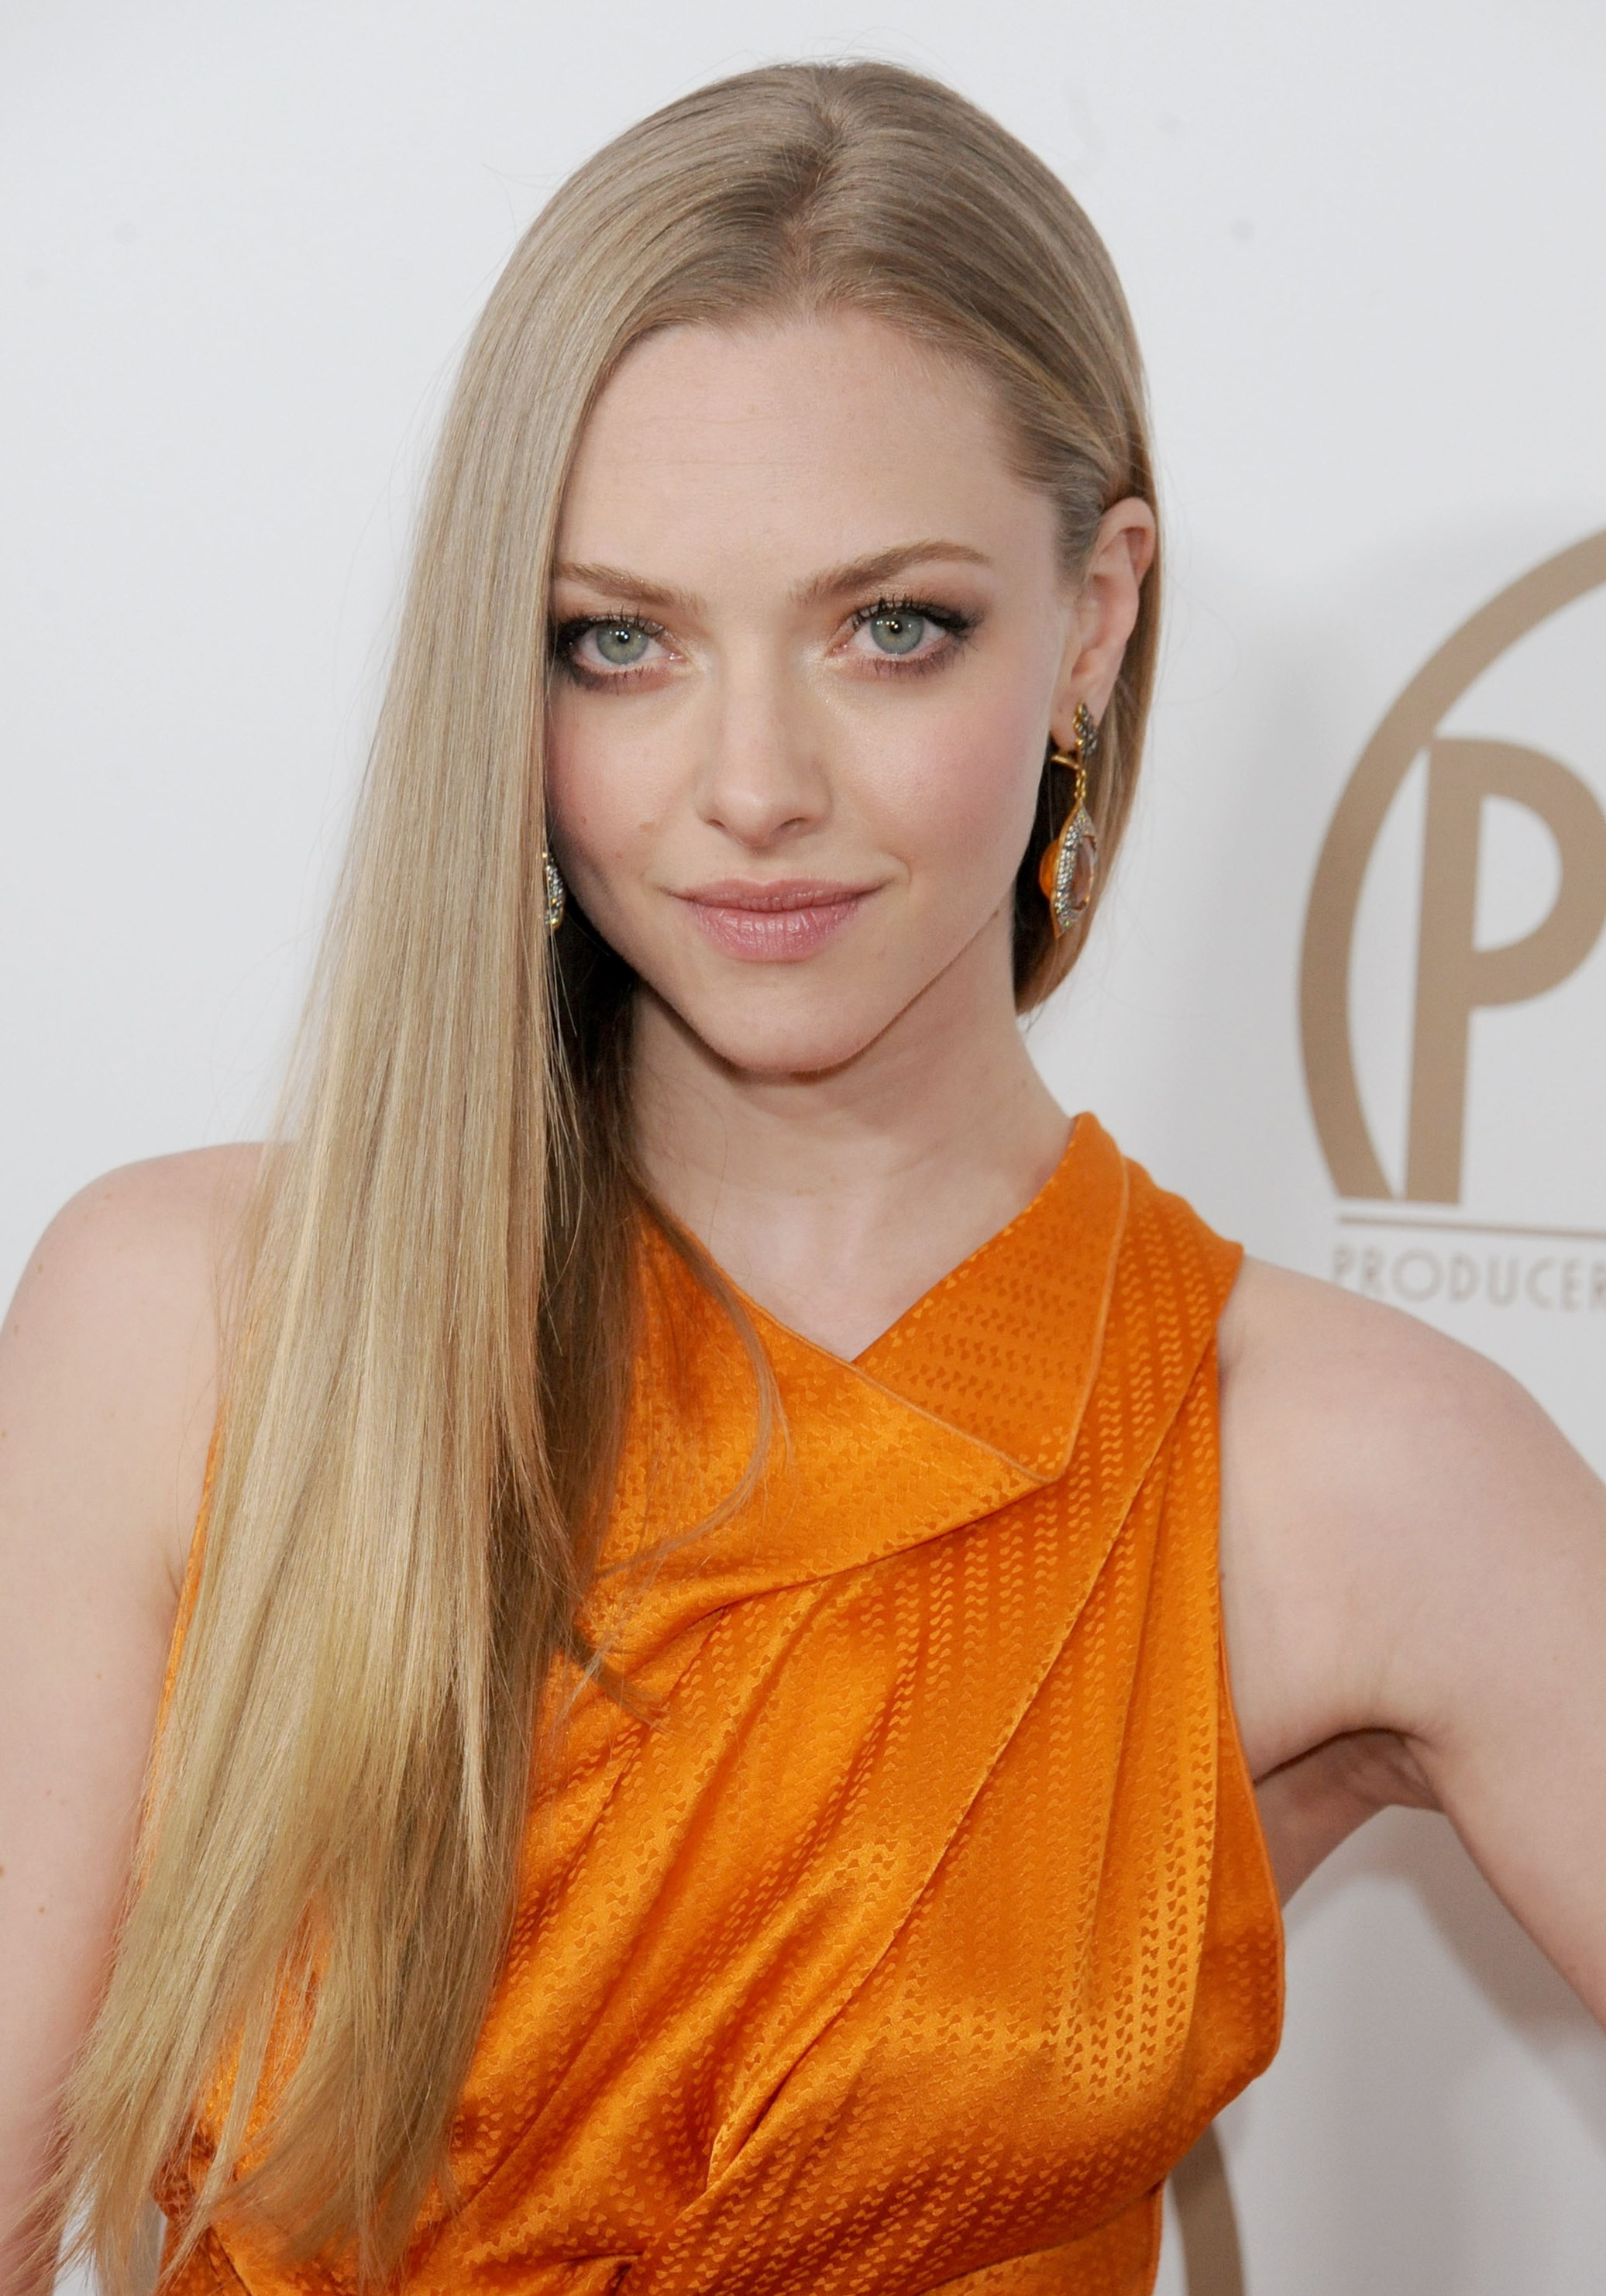 Amanda Seyfried Best Looks Photos